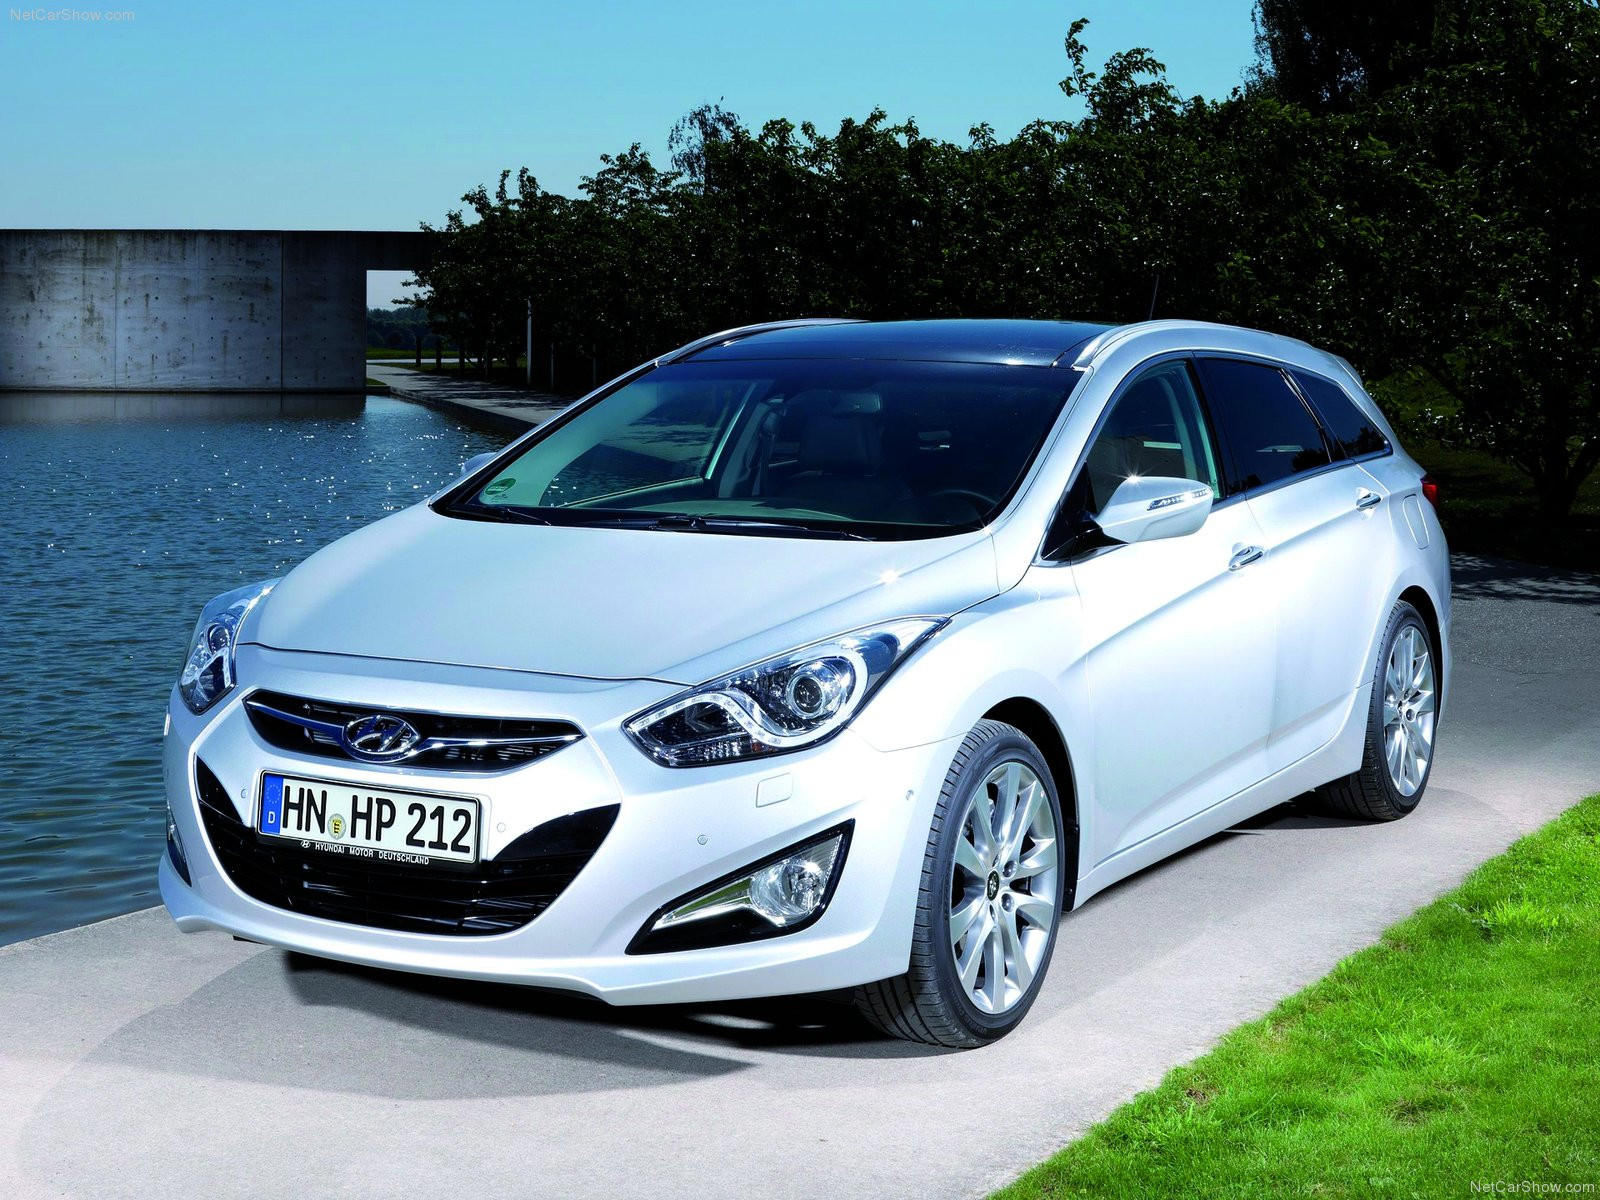 Hyundai i40 photo 83359